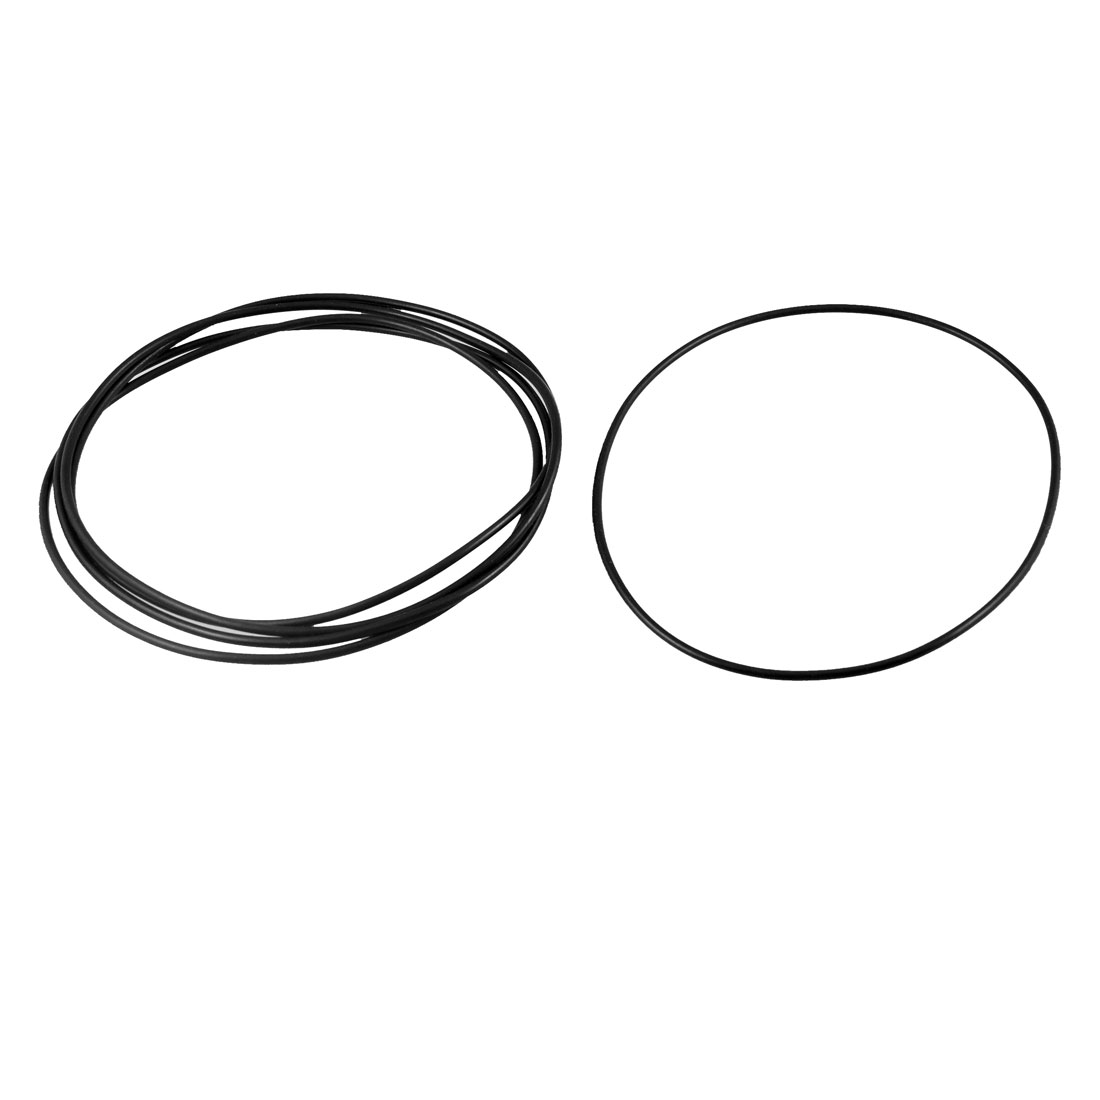 Uxcell 5 Pcs 2 6mm Rubber Sealing Oil Filter O Rings Gaskets Id